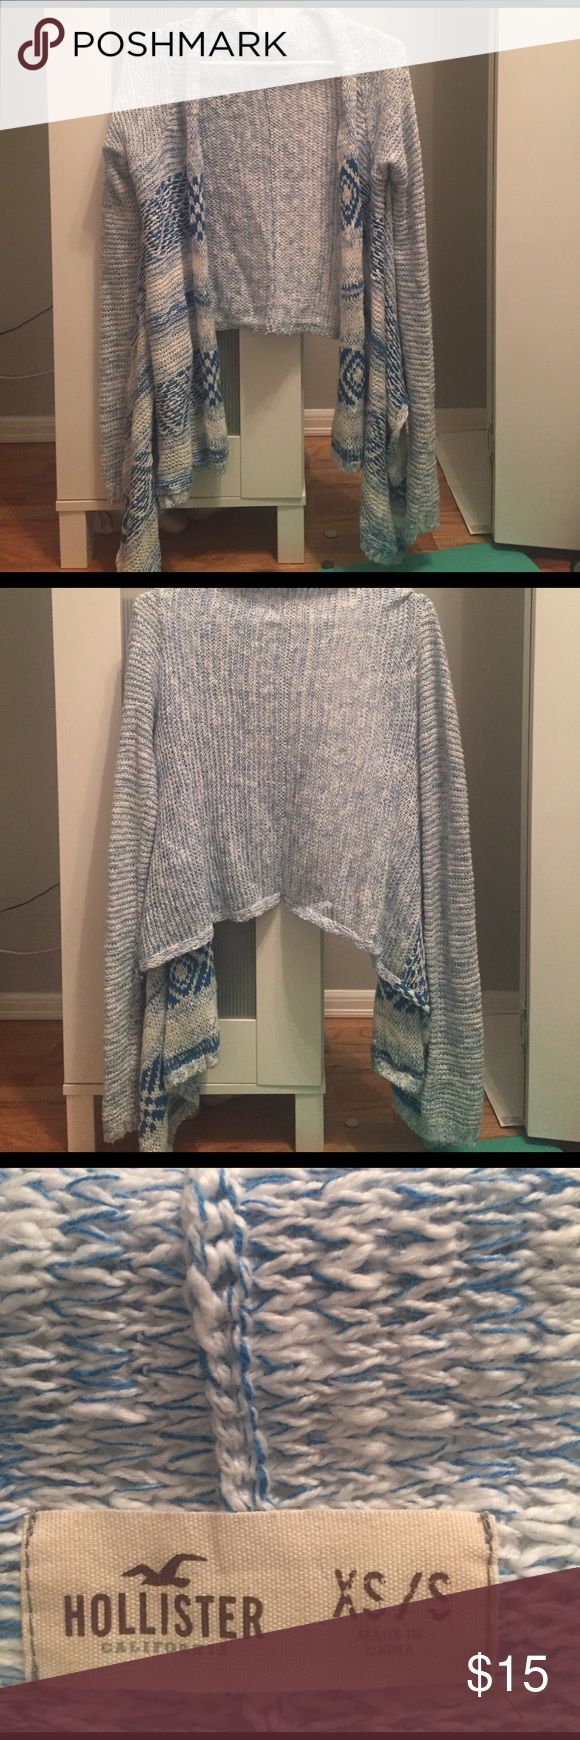 Blue and White Cardigan Blue and white knit cardigan from Hollister. Never worn before! Brand new condition! Hollister Sweaters Cardigans